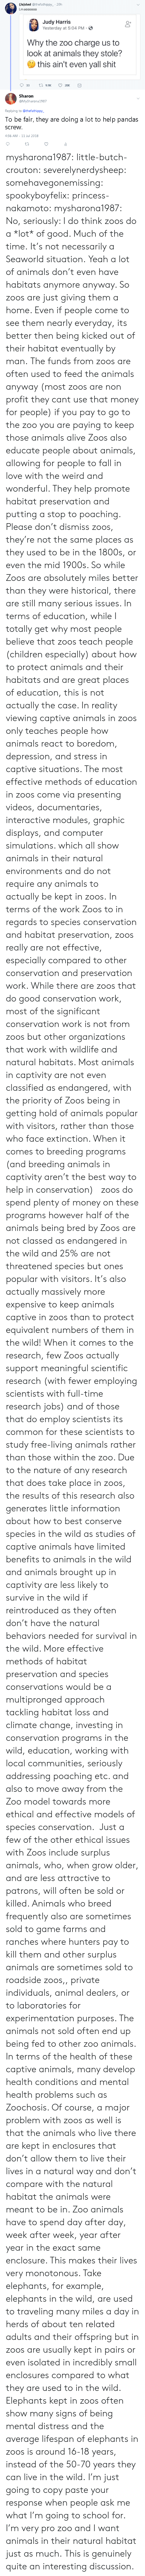 distress: (Ja)ded @thefathippy 20h  maooo000  Judy Harris  Yesterday at 5:04 PM.  0+  Why the zoo charge us to  look at animals they stole?  this ain't even yall shit  Sharon  @MySharona1987  Replying to @thefathippy  To be fair, they are doing a lot to help pandas  screw.  4:56 AM- 11 Jul 2018 mysharona1987:  little-butch-crouton: severelynerdysheep:  somehavegonemissing:  spookyboyfelix:  princess-nakamoto:   mysharona1987:   No, seriously: I do think zoos do a *lot* of good. Much of the time. It's not necessarily a Seaworld situation.   Yeah a lot of animals don't even have habitats anymore anyway. So zoos are just giving them a home. Even if people come to see them nearly everyday, its better then being kicked out of their habitat eventually by man.   The funds from zoos are often used to feed the animals anyway (most zoos are non profit they cant use that money for people) if you pay to go to the zoo you are paying to keep those animals alive  Zoos also educate people about animals, allowing for people to fall in love with the weird and wonderful.  They help promote habitat preservation and putting a stop to poaching. Please don't dismiss zoos, they're not the same places as they used to be in the 1800s, or even the mid 1900s.   So while Zoos are absolutely miles better than they were historical, there are still many serious issues. In terms of education, while I totally get why most people believe that zoos teach people (children especially) about how to protect animals and their habitats and are great places of education, this is not actually the case. In reality viewing captive animals in zoos only teaches people how animals react to boredom, depression, and stress in captive situations. The most effective methods of education in zoos come via presenting videos, documentaries, interactive modules, graphic displays, and computer simulations. which all show animals in their natural environments and do not require any animals to actually be kept in zoos. In terms of the work Zoos to in regards to species conservation and habitat preservation, zoos really are not effective, especially compared to other conservation and preservation work. While there are zoos that do good conservation work, most of the significant conservation work is not from zoos but other organizations that work with wildlife and natural habitats. Most animals in captivity are not even classified as endangered, with the priority of Zoos being in getting hold of animals popular with visitors, rather than those who face extinction. When it comes to breeding programs (and breeding animals in captivity aren't the best way to help in conservation)   zoos do spend plenty of money on these programs however half of the animals being bred by Zoos are not classed as endangered in the wild and 25% are not threatened species but ones popular with visitors. It's also actually massively more expensive to keep animals captive in zoos than to protect equivalent numbers of them in the wild! When it comes to the research, few Zoos actually support meaningful scientific research (with fewer employing scientists with full-time research jobs) and of those that do employ scientists its common for these scientists to study free-living animals rather than those within the zoo. Due to the nature of any research that does take place in zoos, the results of this research also generates little information about how to best conserve species in the wild as studies of captive animals have limited benefits to animals in the wild and animals brought up in captivity are less likely to survive in the wild if reintroduced as they often don't have the natural behaviors needed for survival in the wild. More effective methods of habitat preservation and species conservations would be a multipronged approach tackling habitat loss and climate change, investing in conservation programs in the wild, education, working with local communities, seriously addressing poaching etc. and also to move away from the Zoo model towards more ethical and effective models of species conservation.  Just a few of the other ethical issues with Zoos include surplus animals, who, when grow older, and are less attractive to patrons, will often be sold or killed. Animals who breed frequently also are sometimes sold to game farms and ranches where hunters pay to kill them and other surplus animals are sometimes sold to roadside zoos,, private individuals, animal dealers, or to laboratories for experimentation purposes. The animals not sold often end up being fed to other zoo animals. In terms of the health of these captive animals, many develop health conditions and mental health problems such as Zoochosis. Of course, a major problem with zoos as well is that the animals who live there are kept in enclosures that don't allow them to live their lives in a natural way and don't compare with the natural habitat the animals were meant to be in. Zoo animals have to spend day after day, week after week, year after year in the exact same enclosure. This makes their lives very monotonous. Take elephants, for example, elephants in the wild, are used to traveling many miles a day in herds of about ten related adults and their offspring but in zoos are usually kept in pairs or even isolated in incredibly small enclosures compared to what they are used to in the wild. Elephants kept in zoos often show many signs of being mental distress and the average lifespan of elephants in zoos is around 16-18 years, instead of the 50-70 years they can live in the wild.   I'm just going to copy paste your response when people ask me what I'm going to school for. I'm very pro zoo and I want animals in their natural habitat just as much.  This is genuinely quite an interesting discussion.